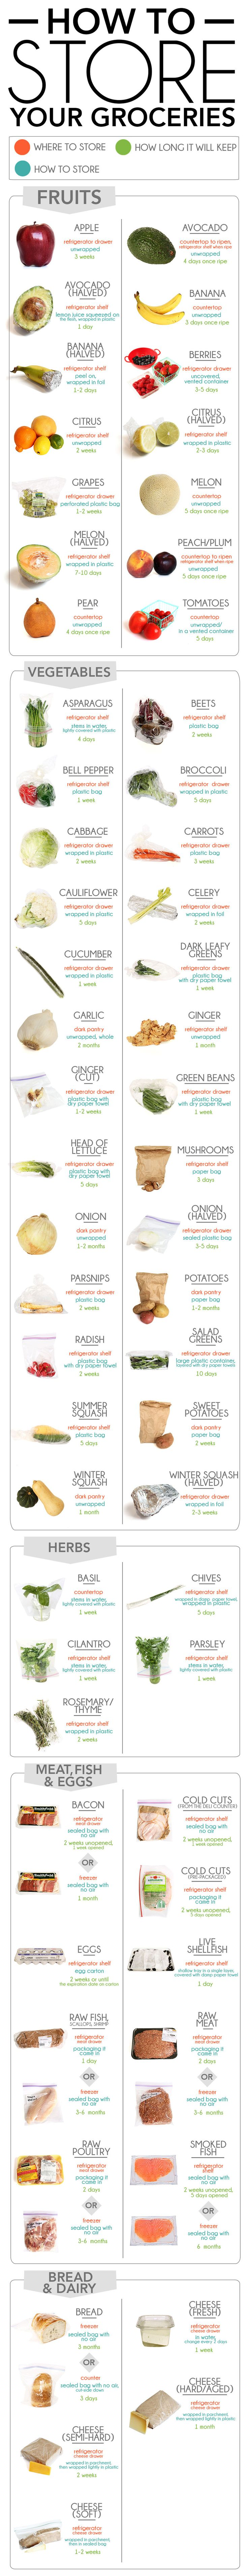 Guide to Storing Food